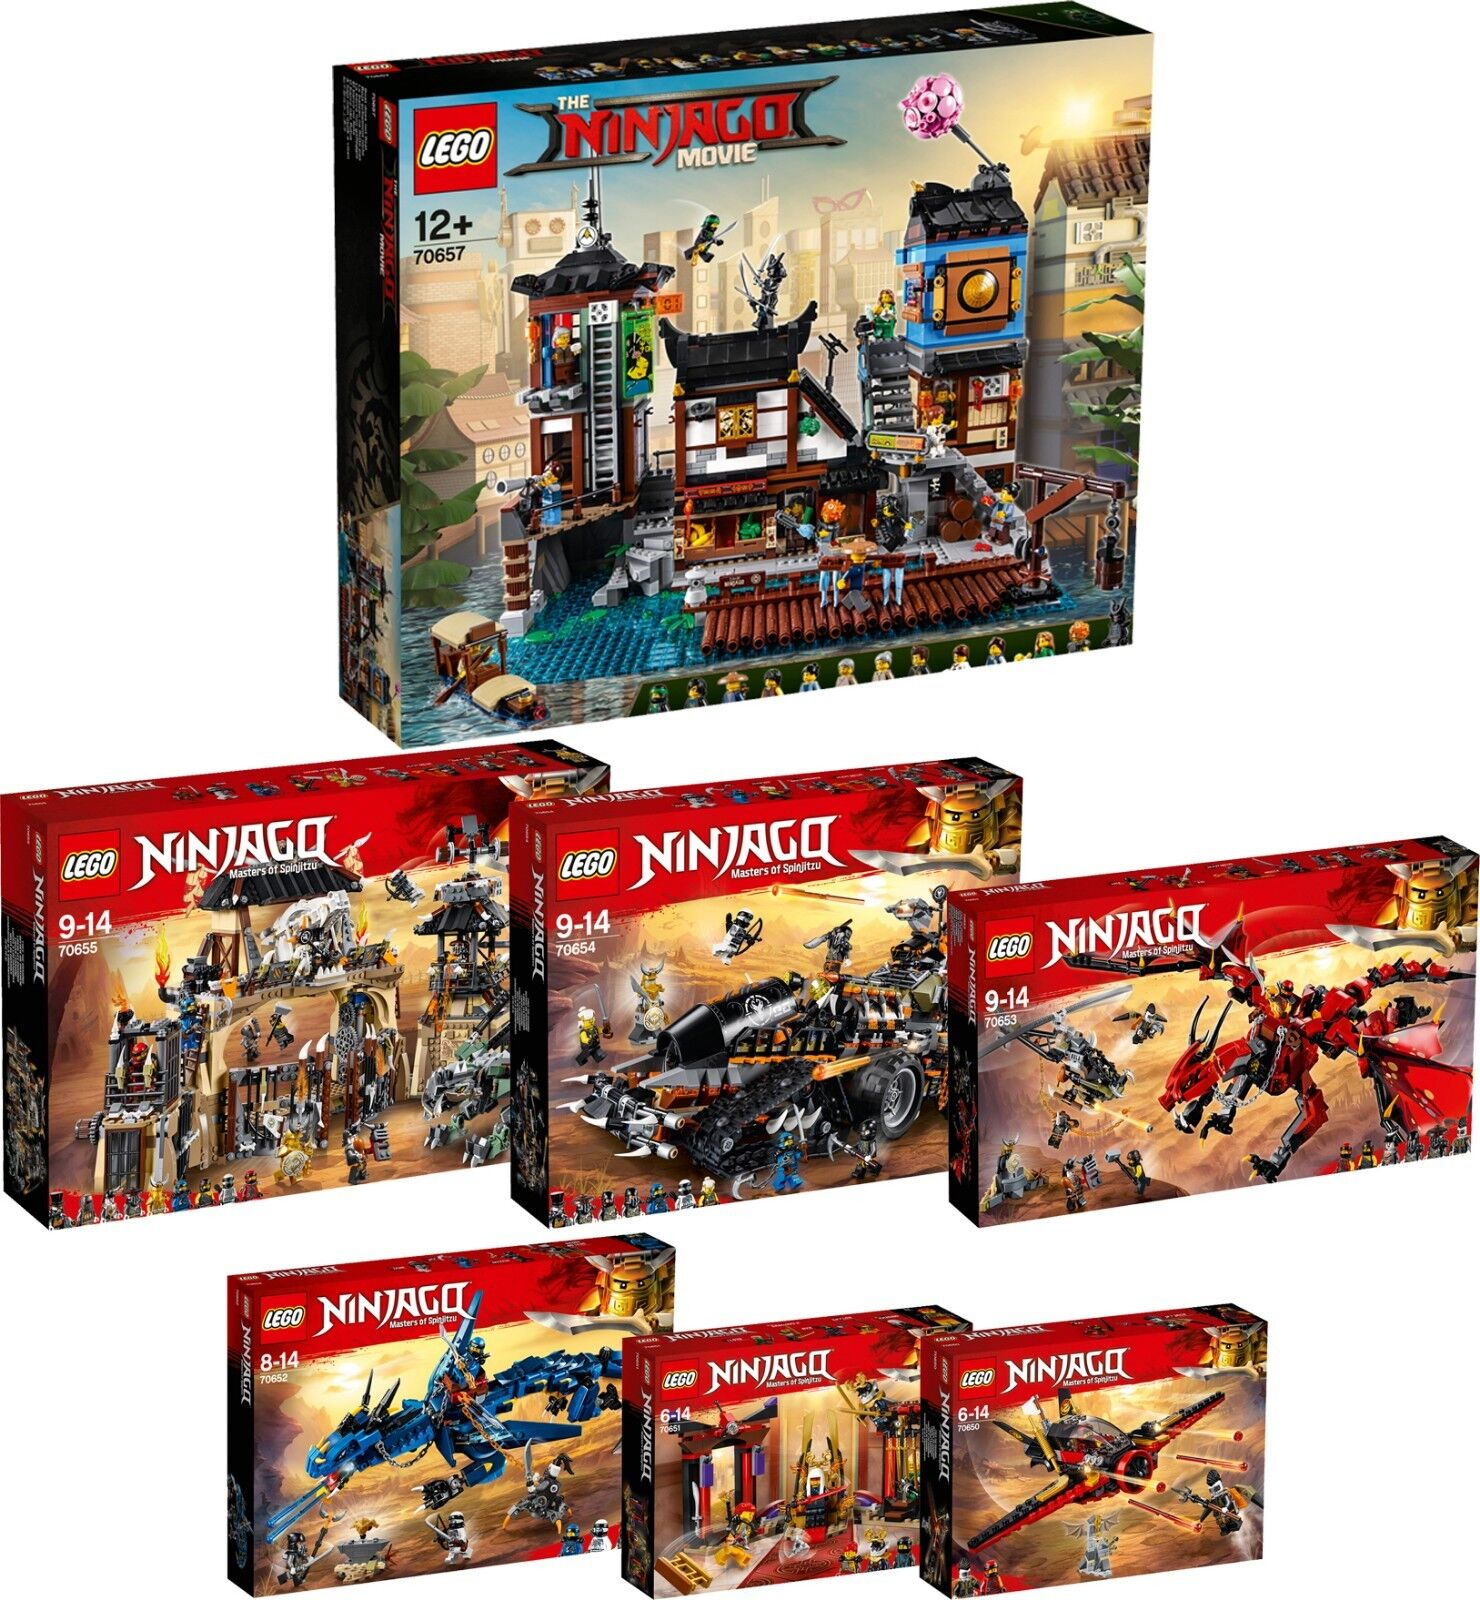 Lego Ninjago 70657 70655 70654 70653 70652 70651 70650 Dragon Super Set n6 18